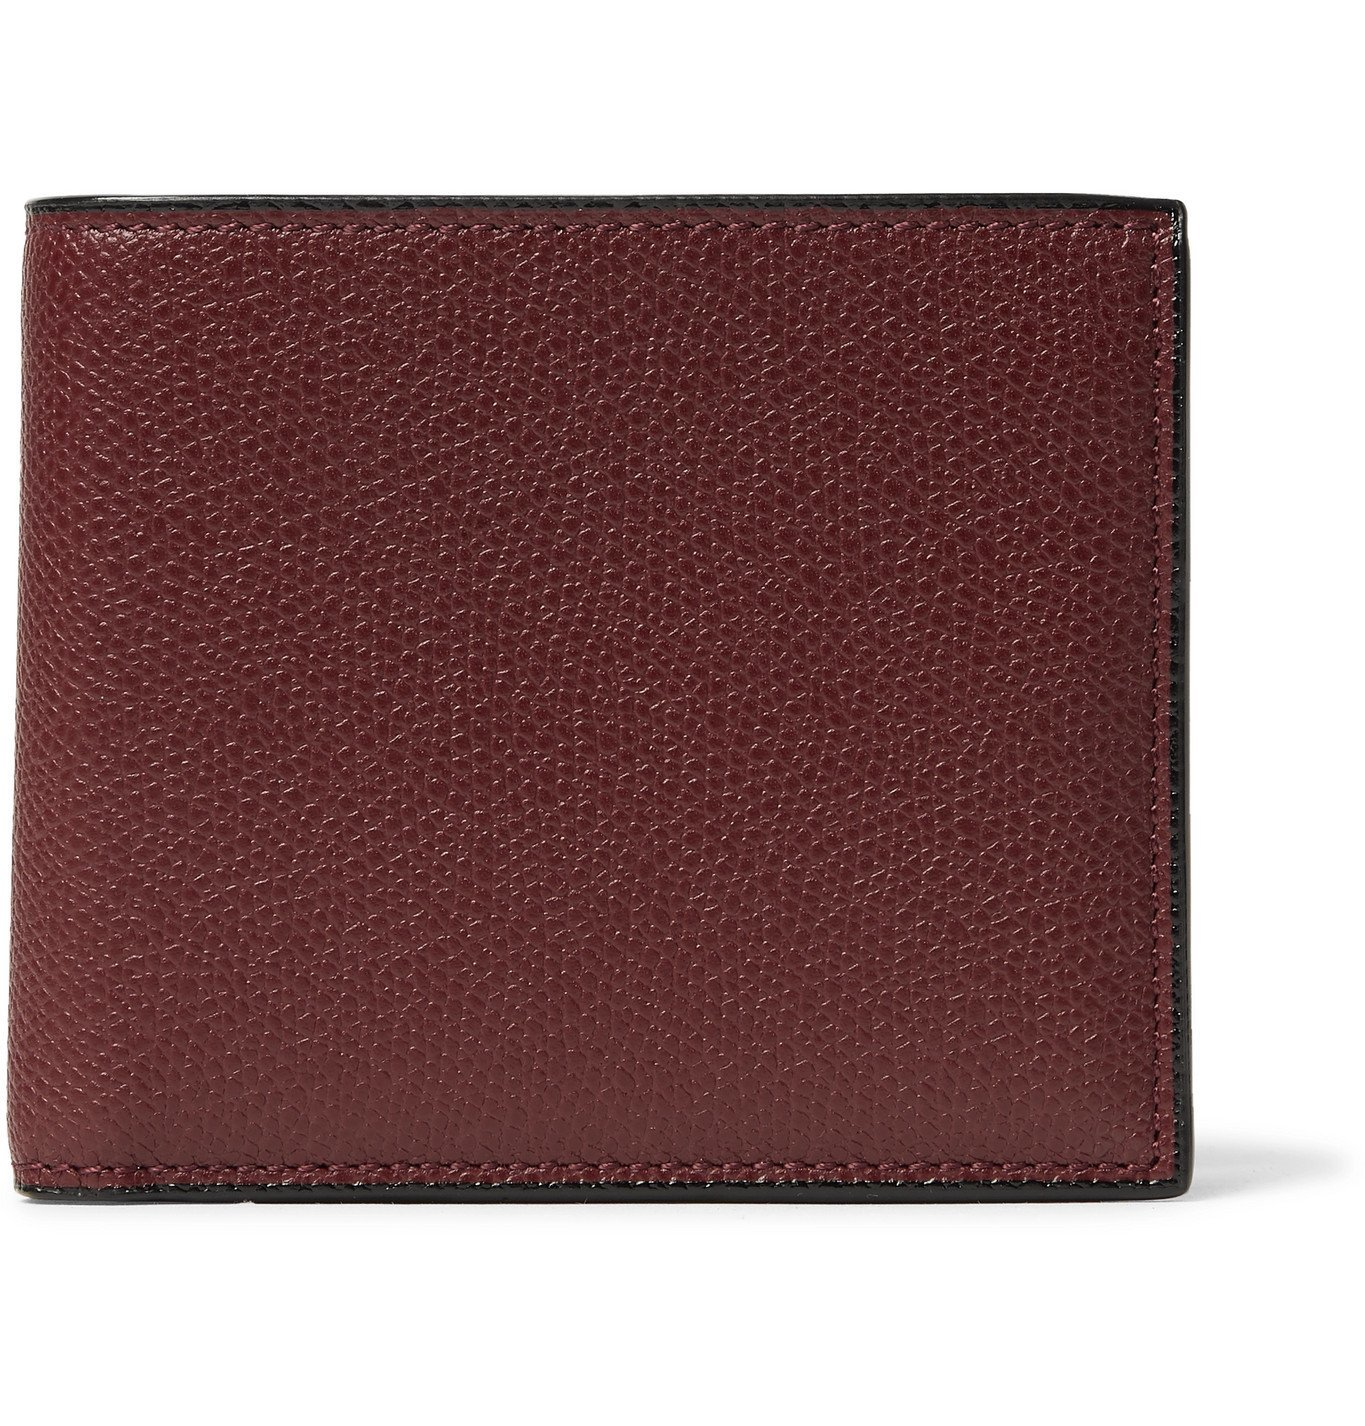 Photo: Valextra - Pebble-Grain Leather Billfold Wallet - Burgundy